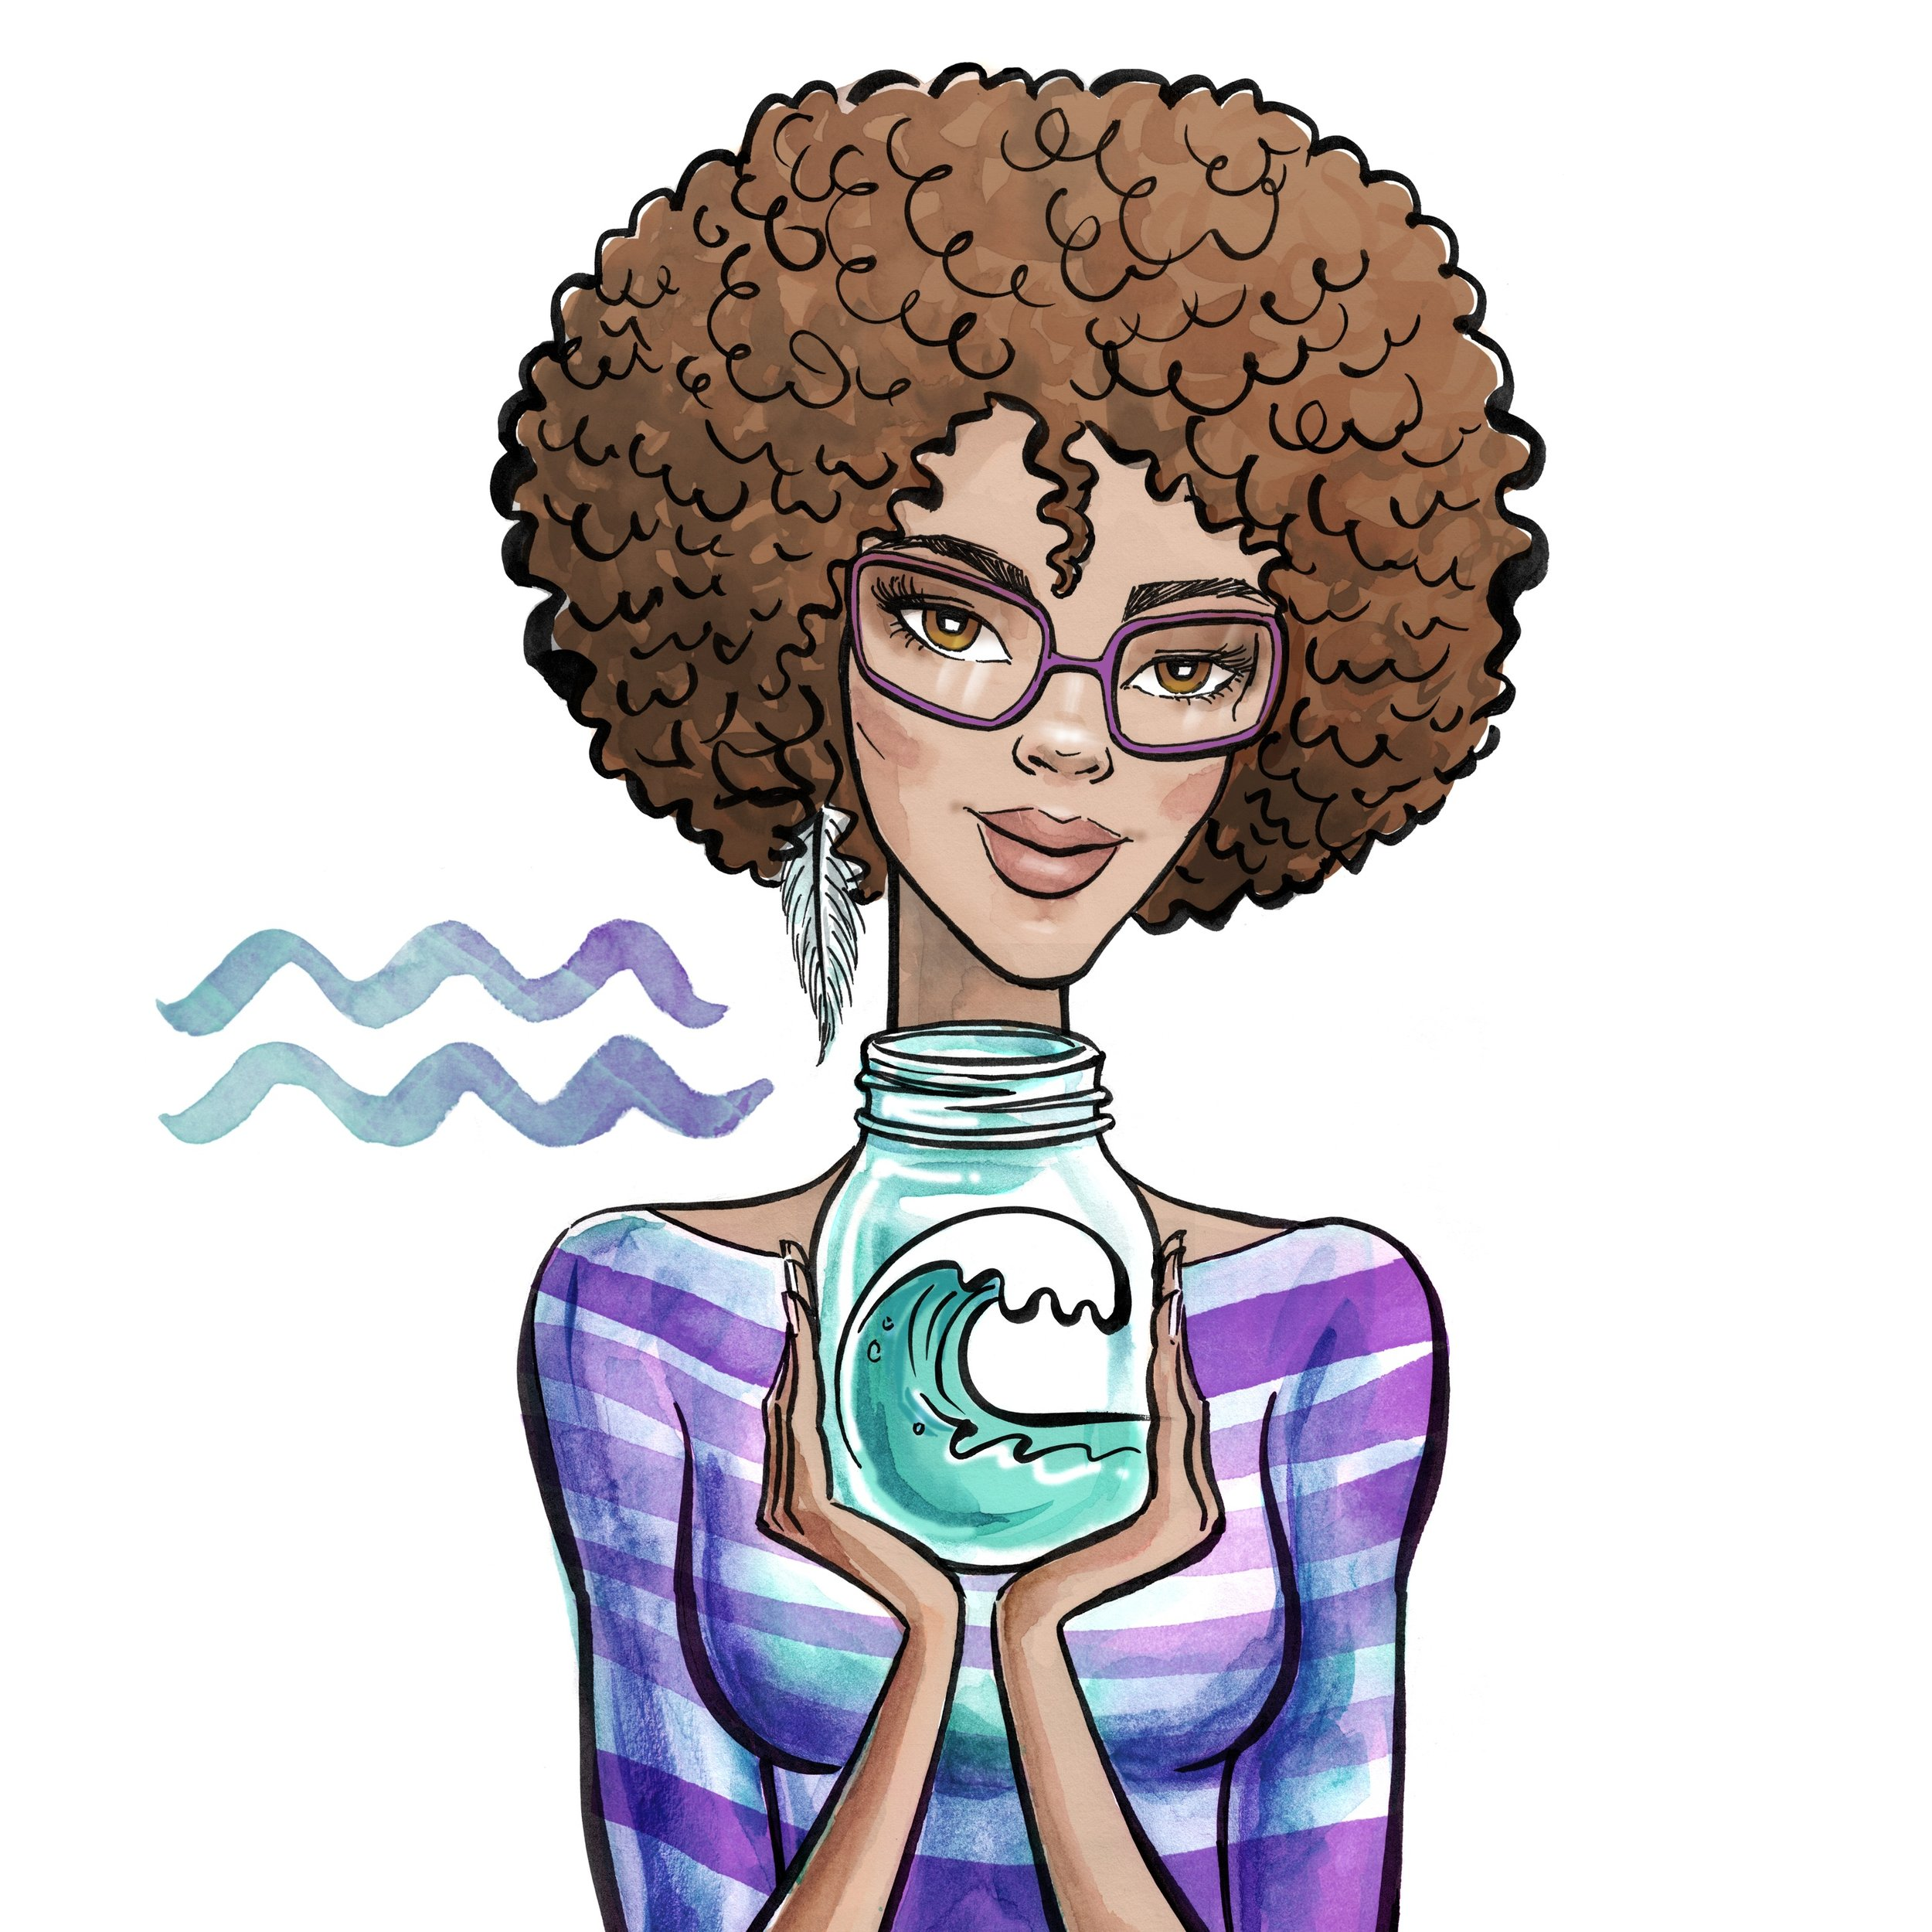 Aquarius 2019 Yearly Horoscope Summary       Good fortune and expansion:   Goals, Friendships, Work, Health, Daily Routines    Change, Hard Work, Re-Evaluation:   Mental Health, Outdated thinking, Toxic People